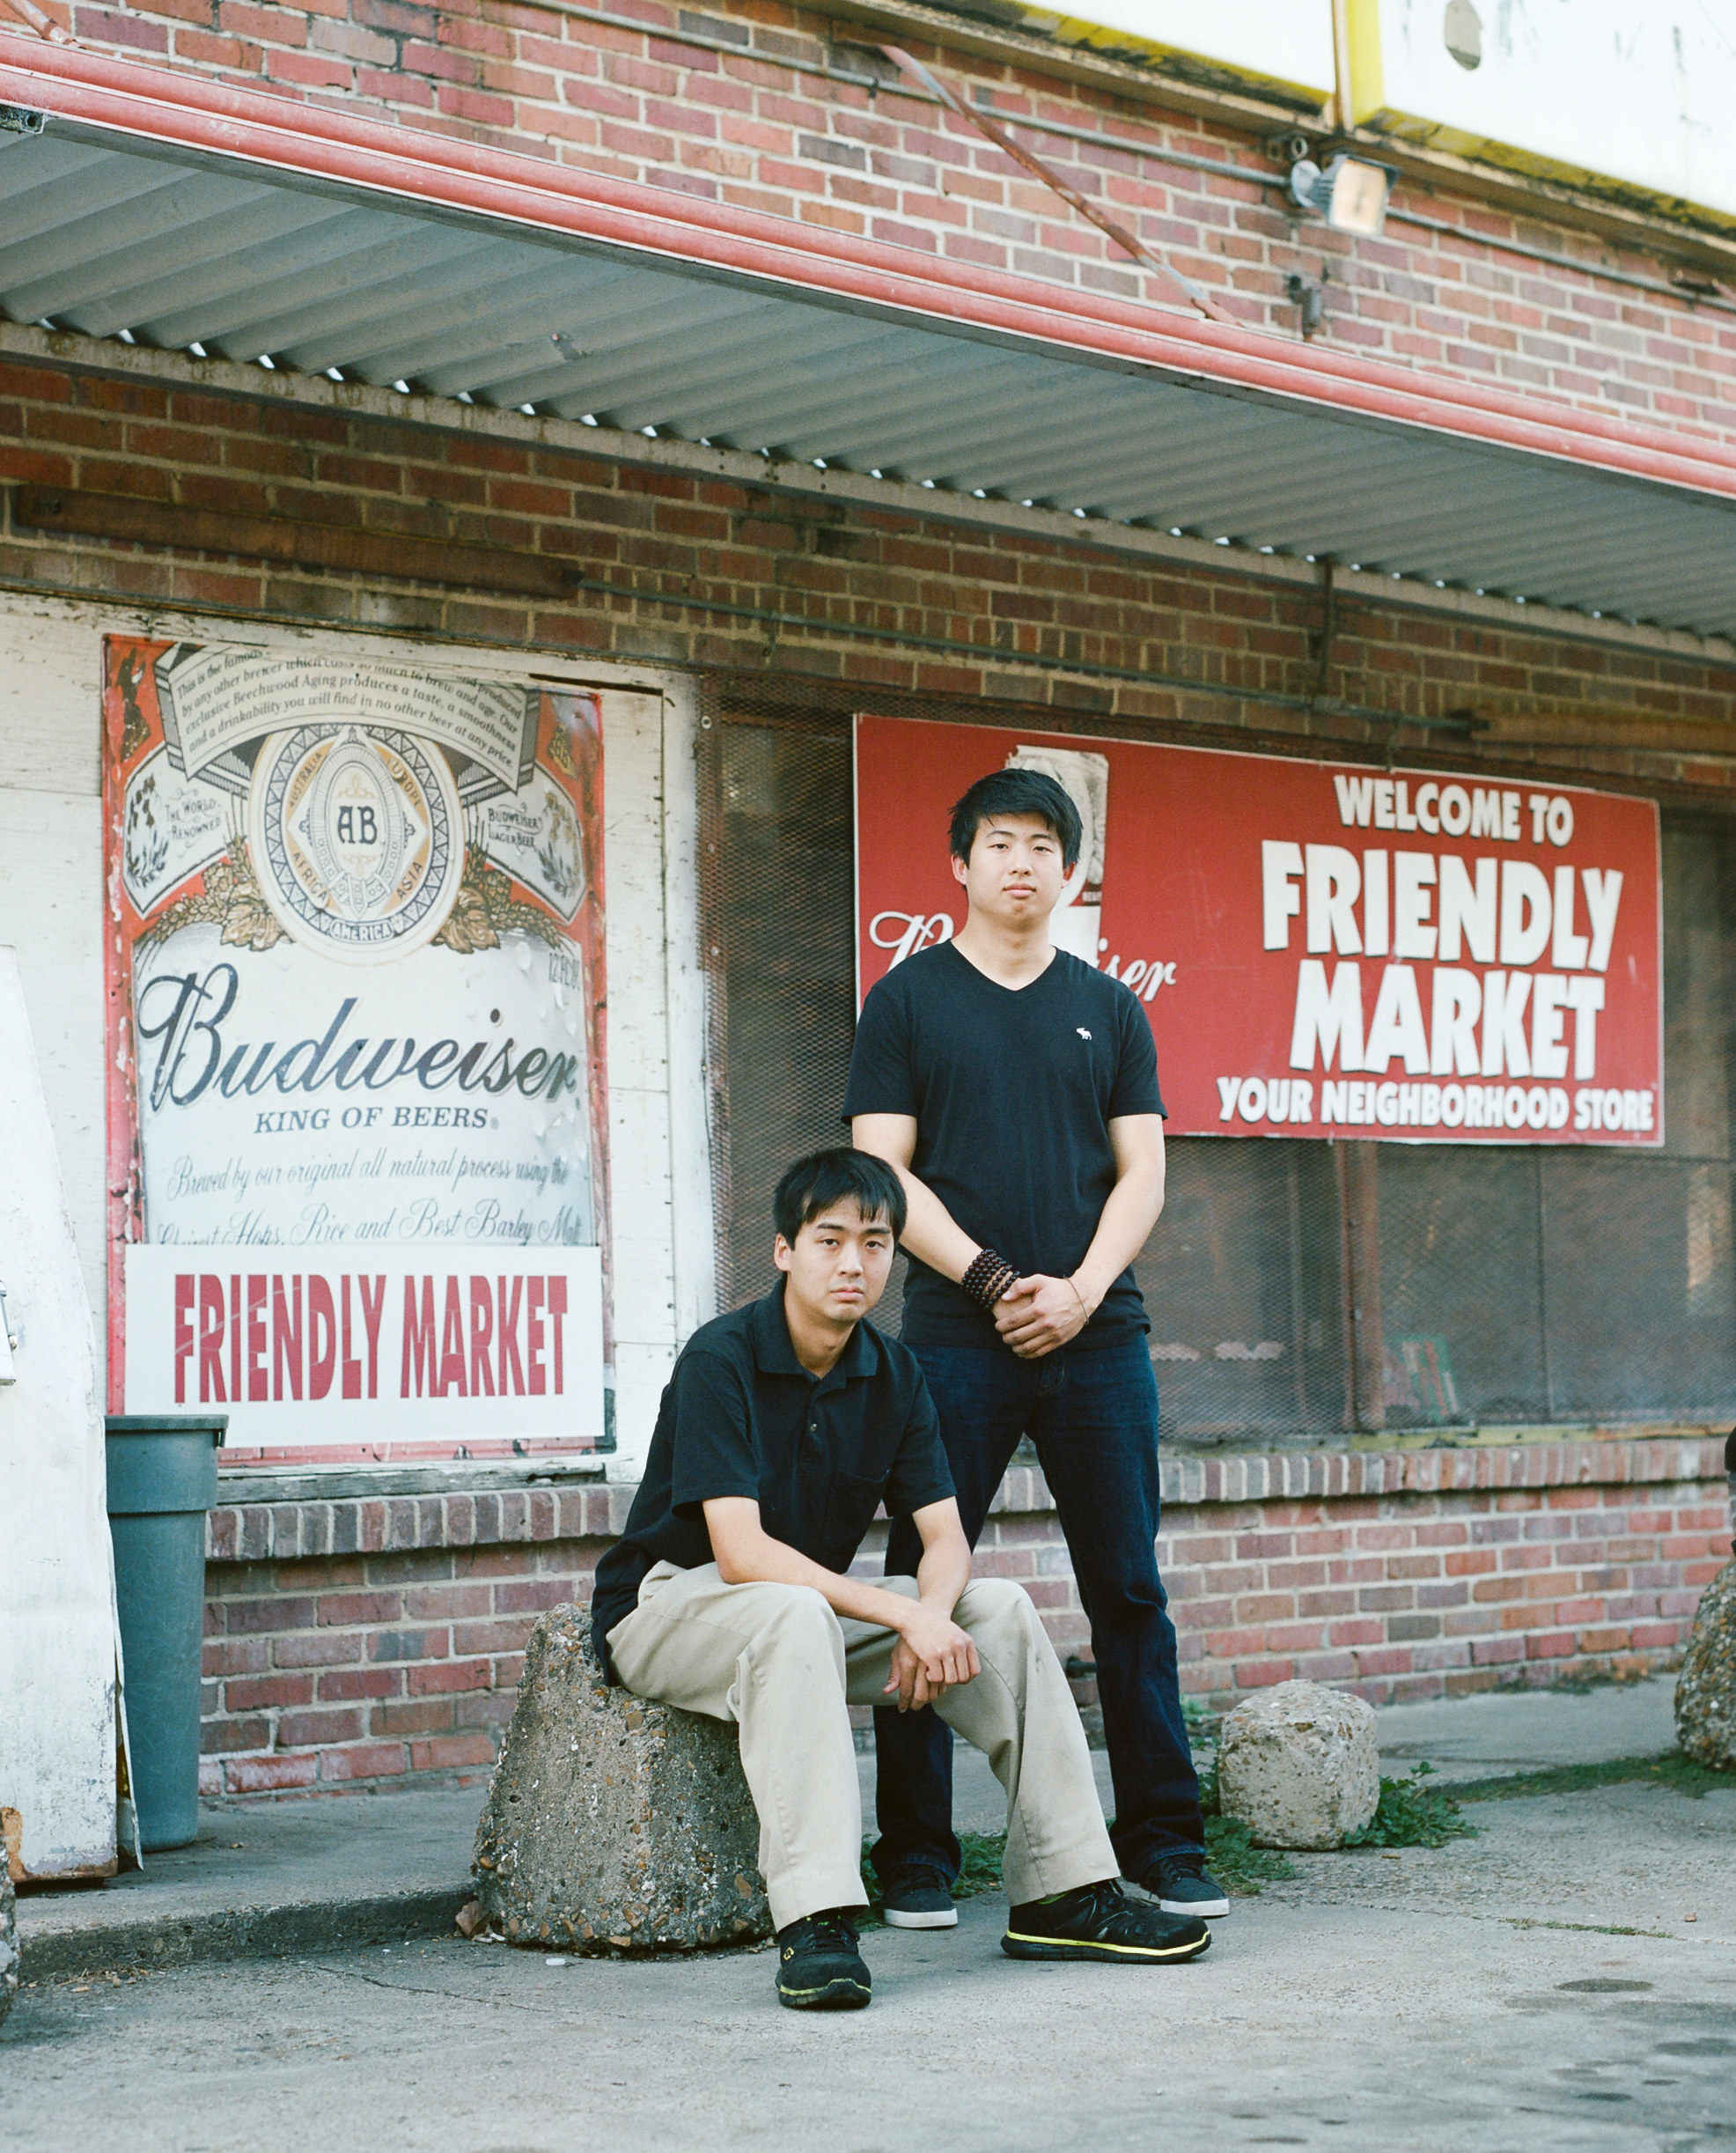 Two men sit in front of a small store with Budweiser signs and a sign saying Your Friendly Neighborhood Market